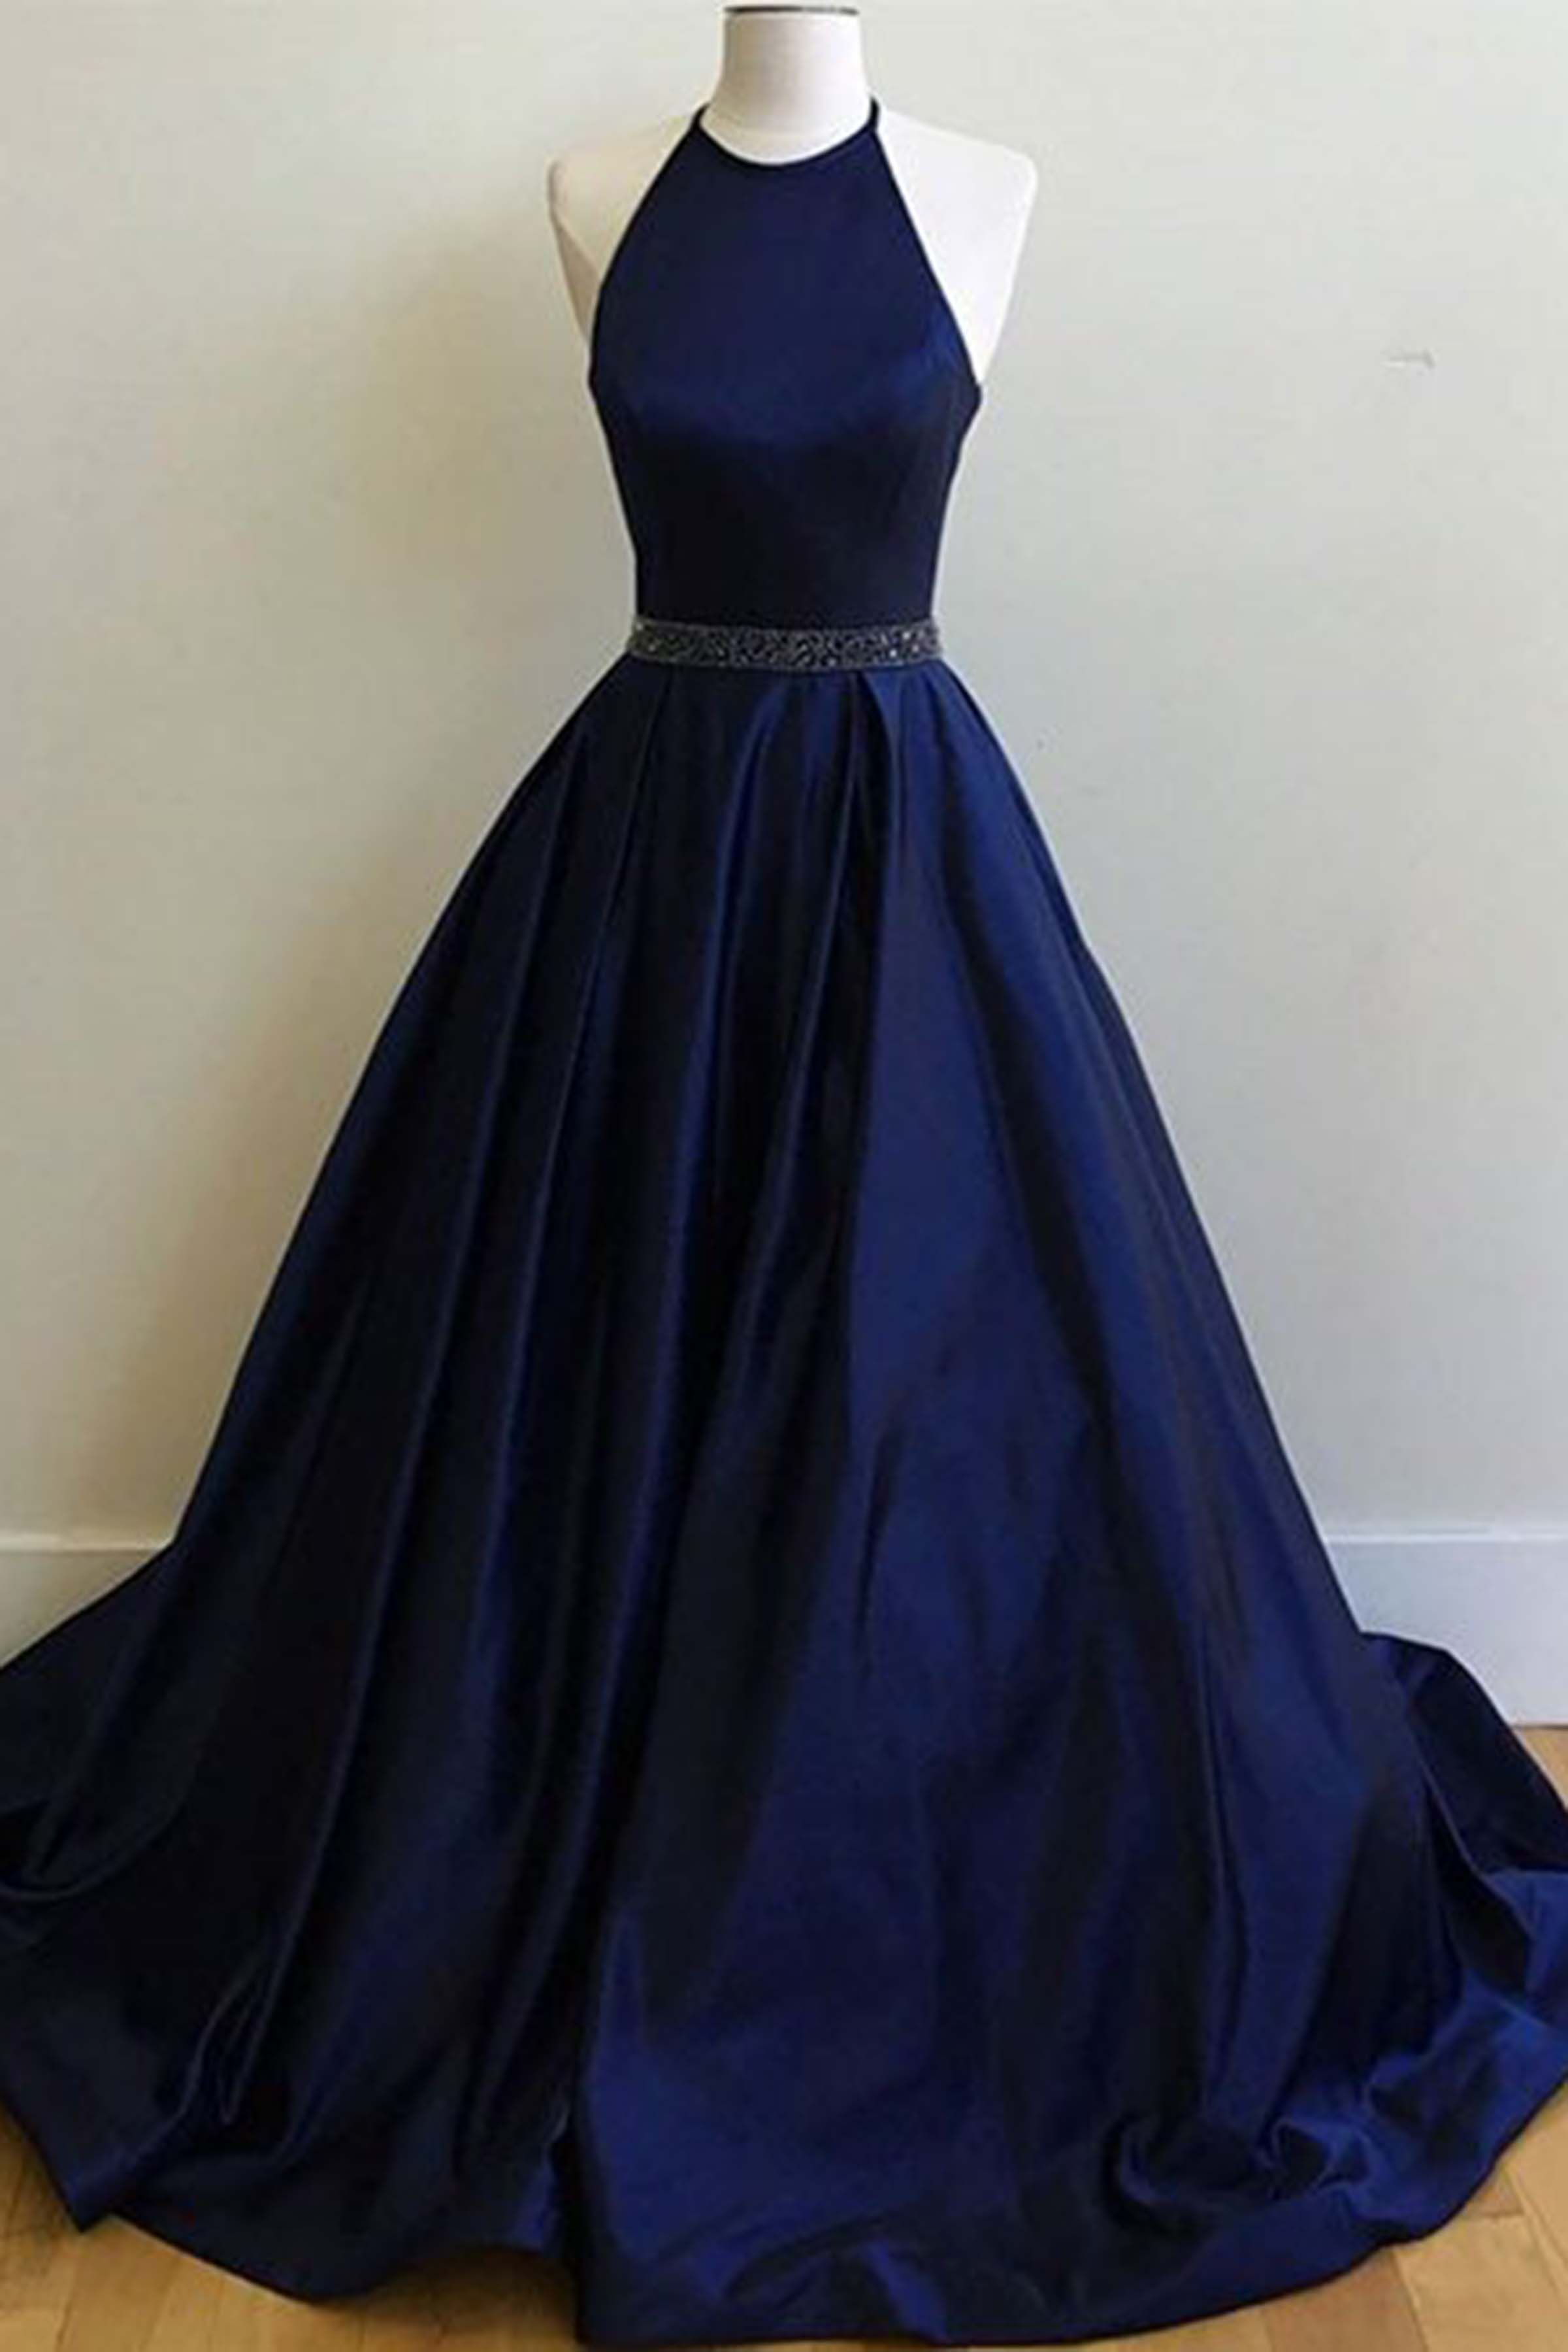 Prom Dress, Prom Dresses,Graduation Party Dresses, Prom Dresses For ...